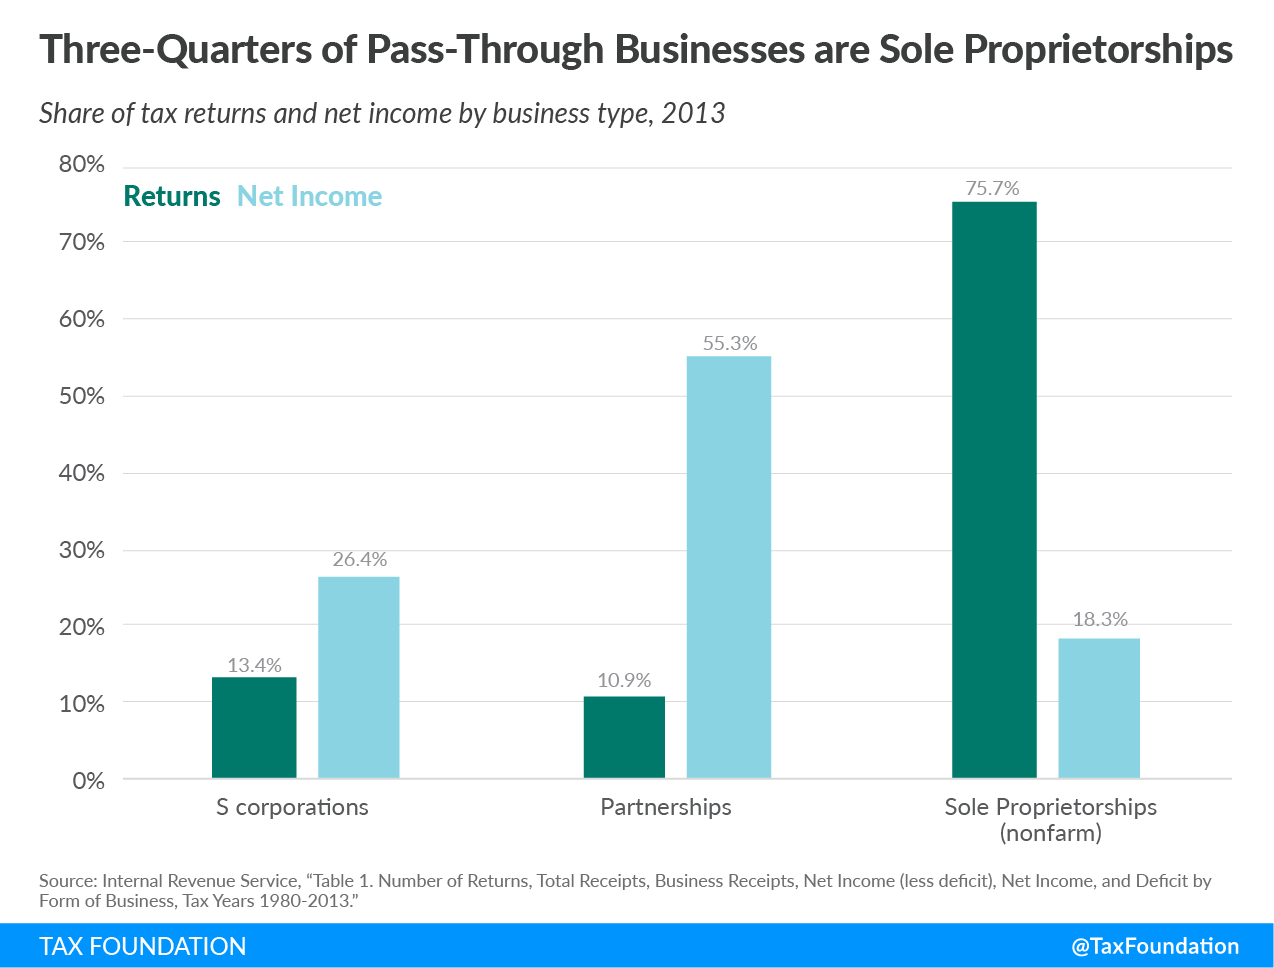 Three-quarters of pass-through businesses are sole proprietorship, pass-through business